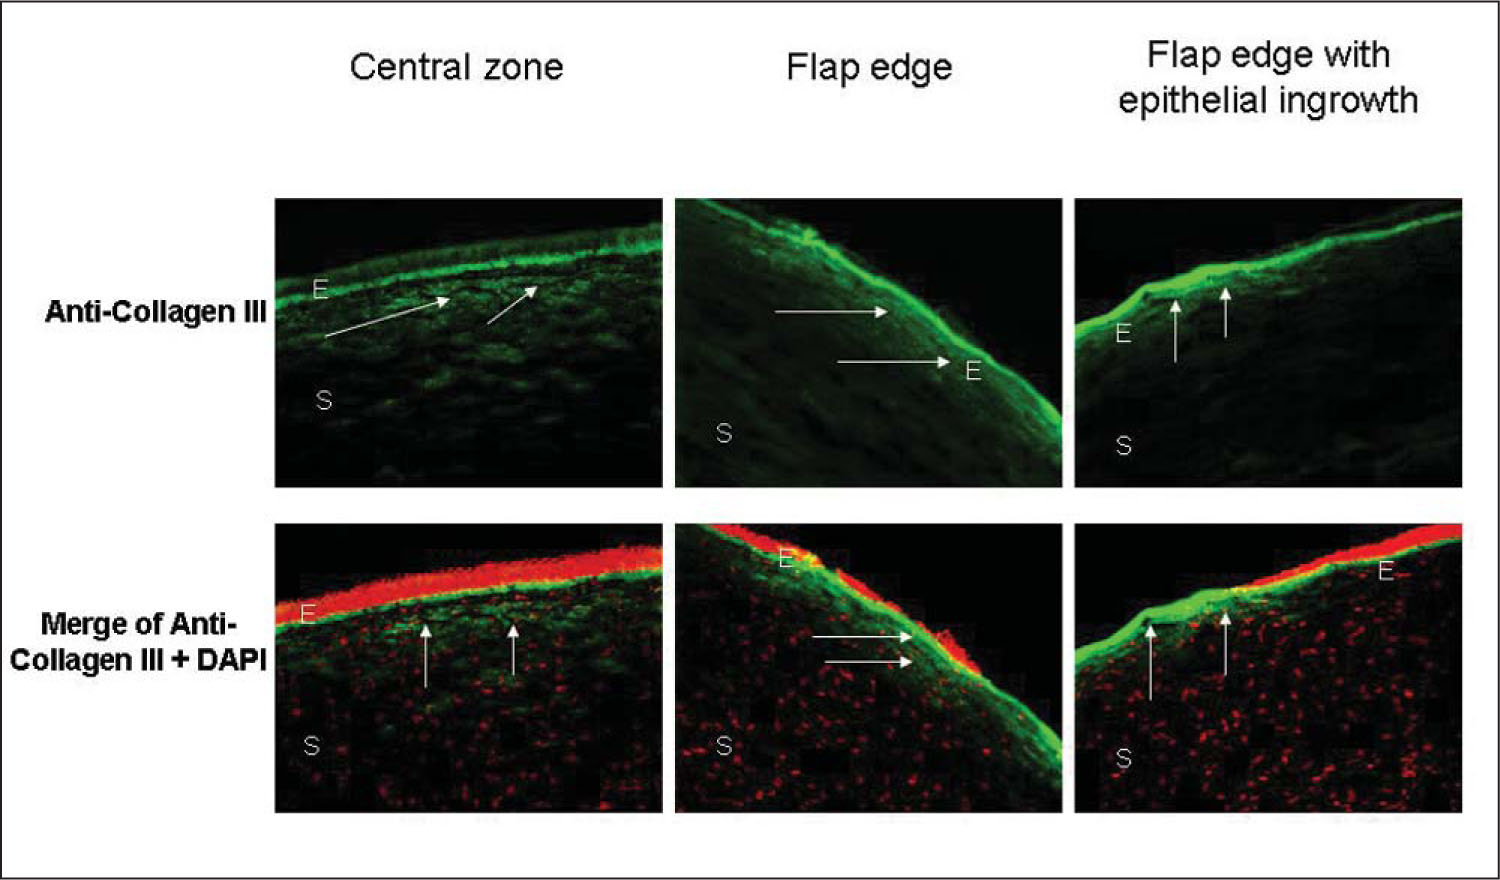 Low expression of collagen III (arrows) in ectatic human corneas after LASIK surgery is observed at the central zone (left panels) and flap edge (middle panels) of corneas with subtle flap edges. Significant expression of collagen III (arrows) was observed in the peripheral fibrotic scar region (right panels) in the cornea with epithelial ingrowth. 4′6-diamidino-2-phenylindole (DAPI) was used for nuclear counterstaining (red cells). E=epithelium, S=stroma